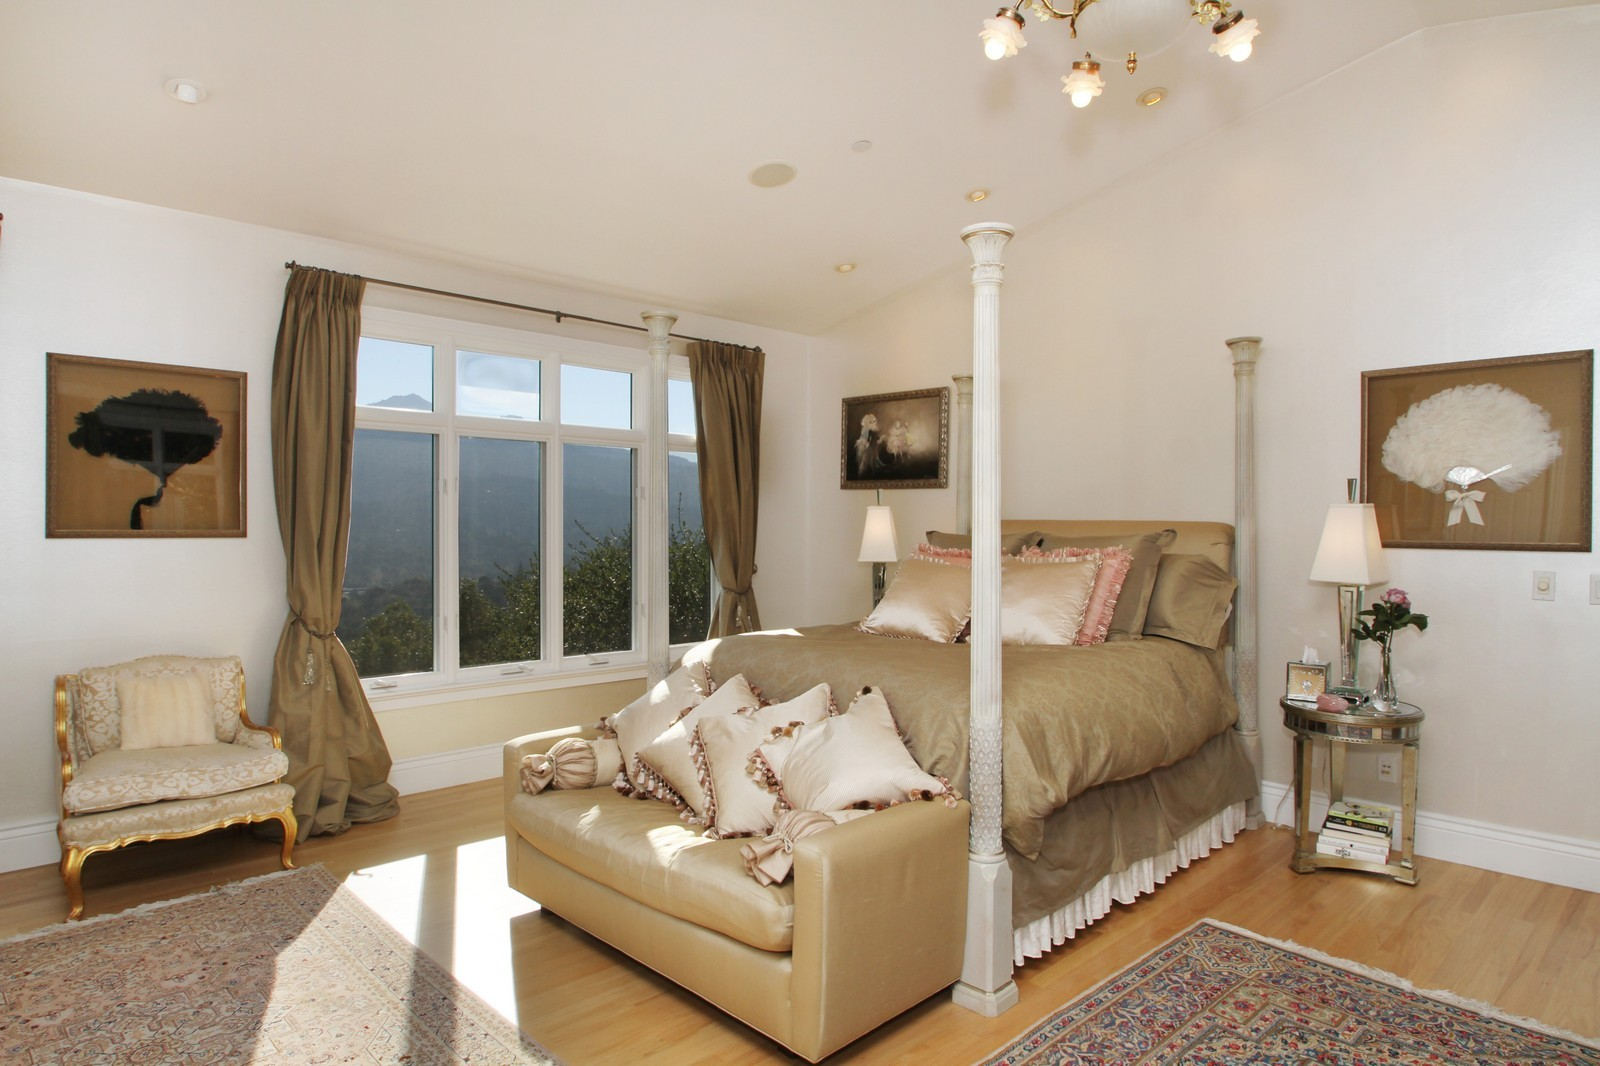 Real Estate Photography - 73 Upper Toyon Drive, Kentfield, CA, 94904 - Master Bedroom